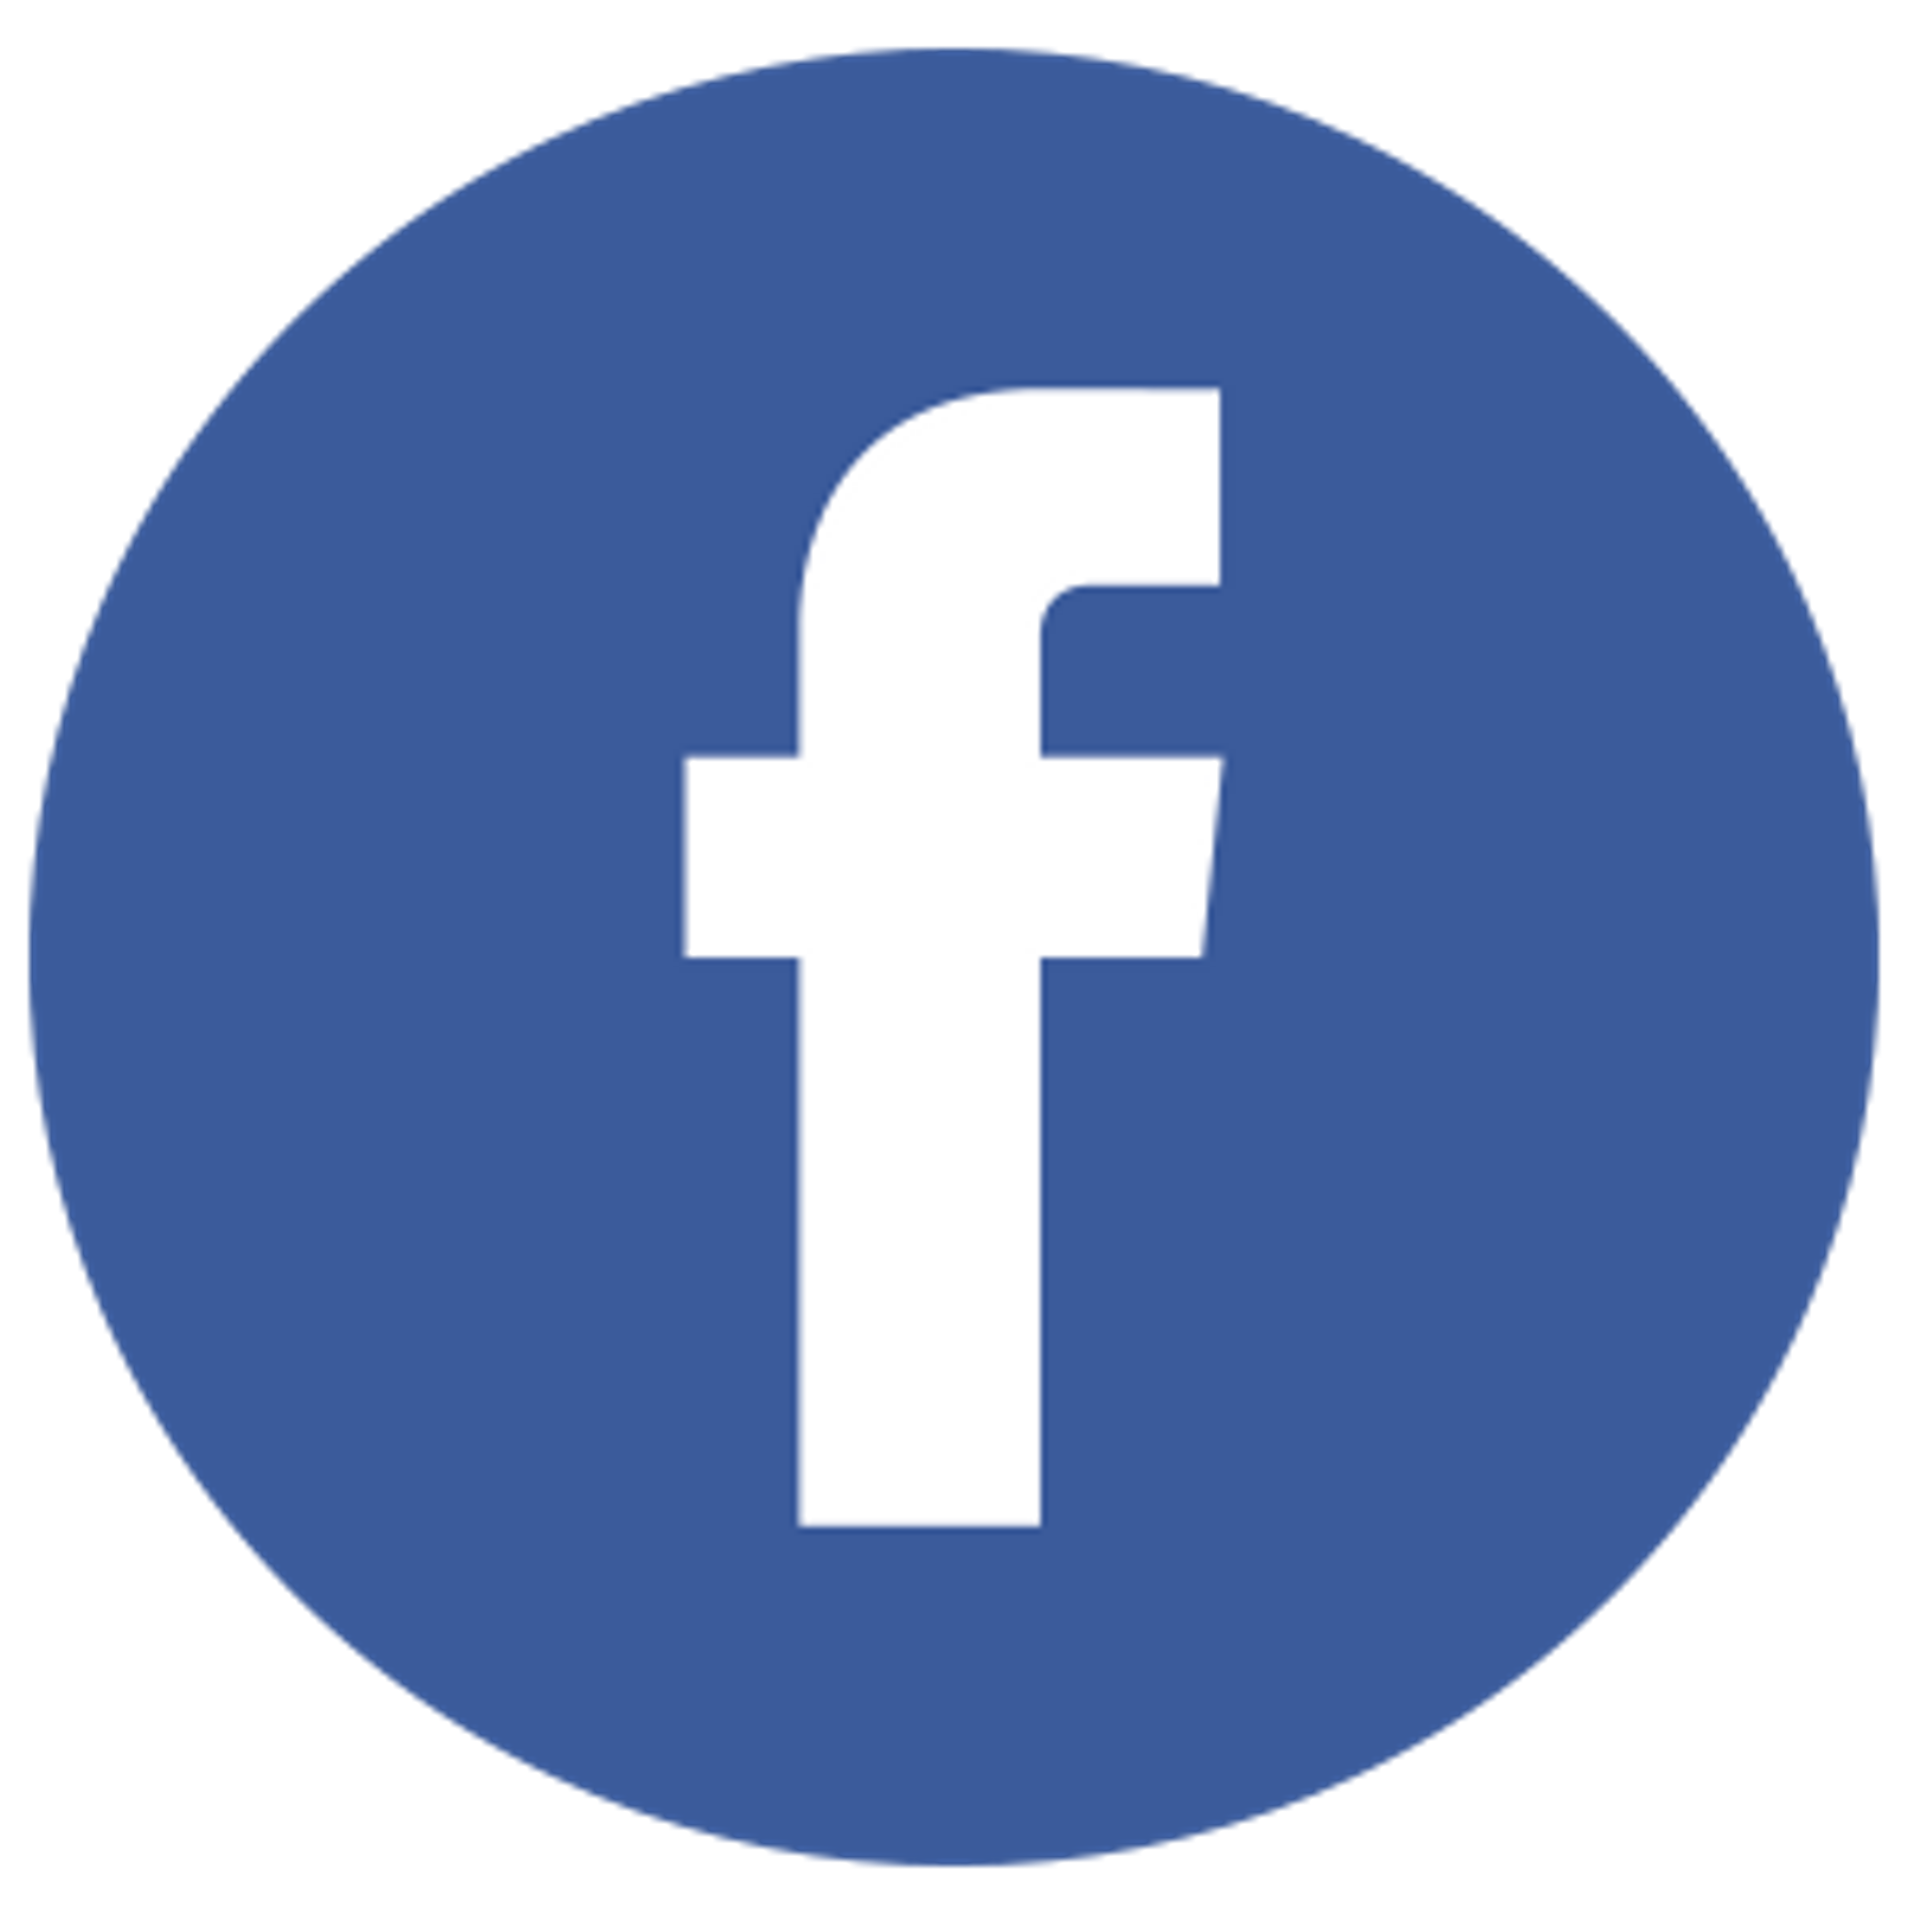 Facebook share png. Social media computer icons